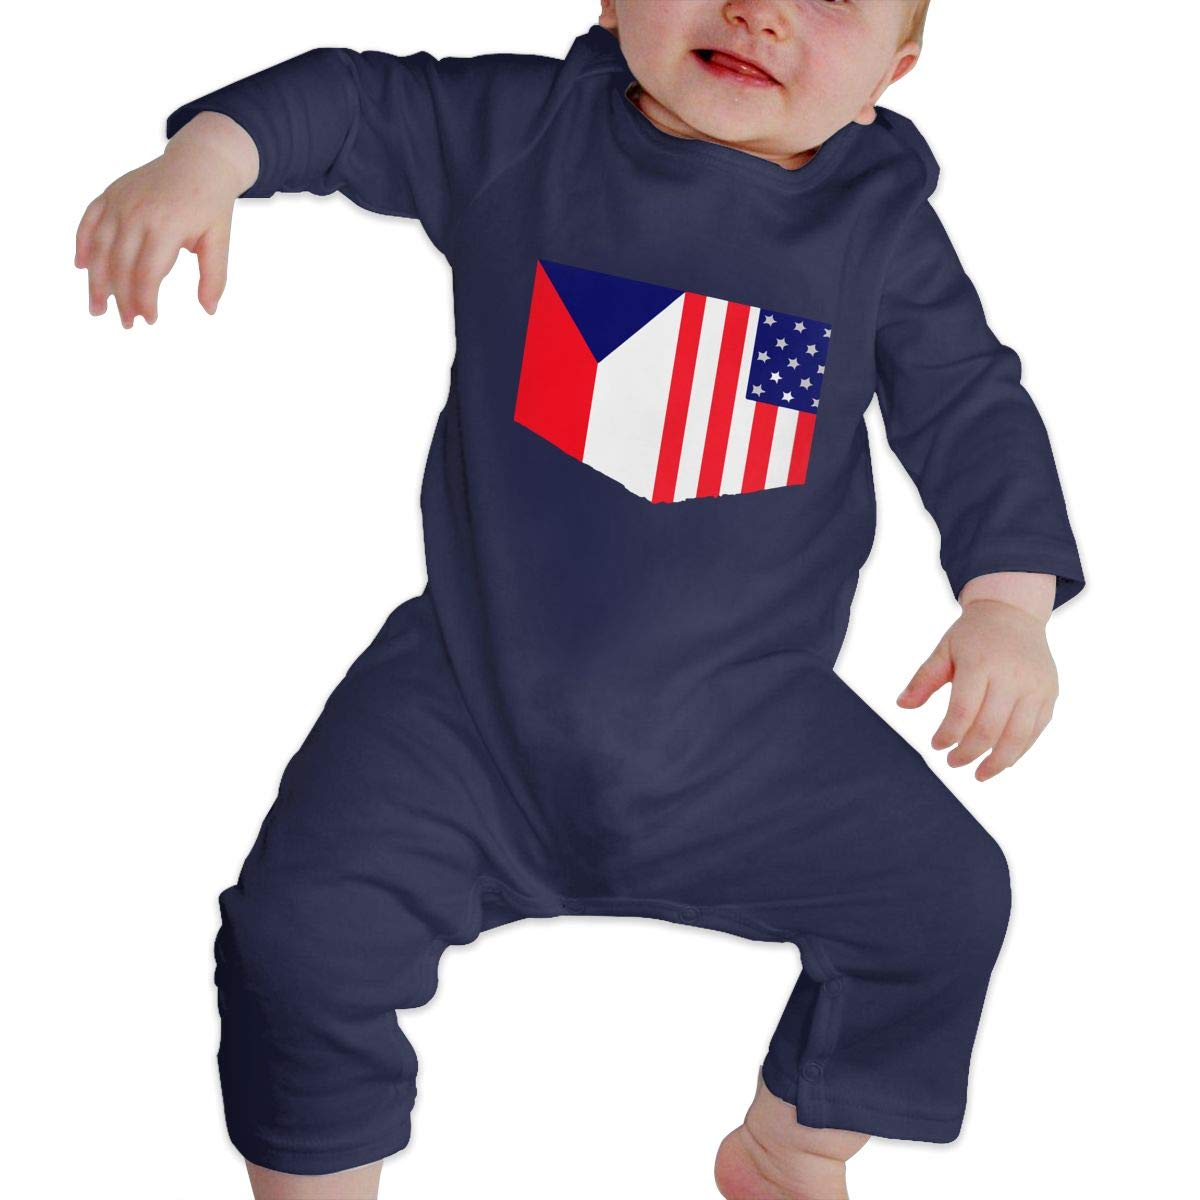 Warm Czech Flag and American Flag Cotton Playsuit Db84UR@5p Infant Baby Girls Boys Long Sleeve Jumpsuit